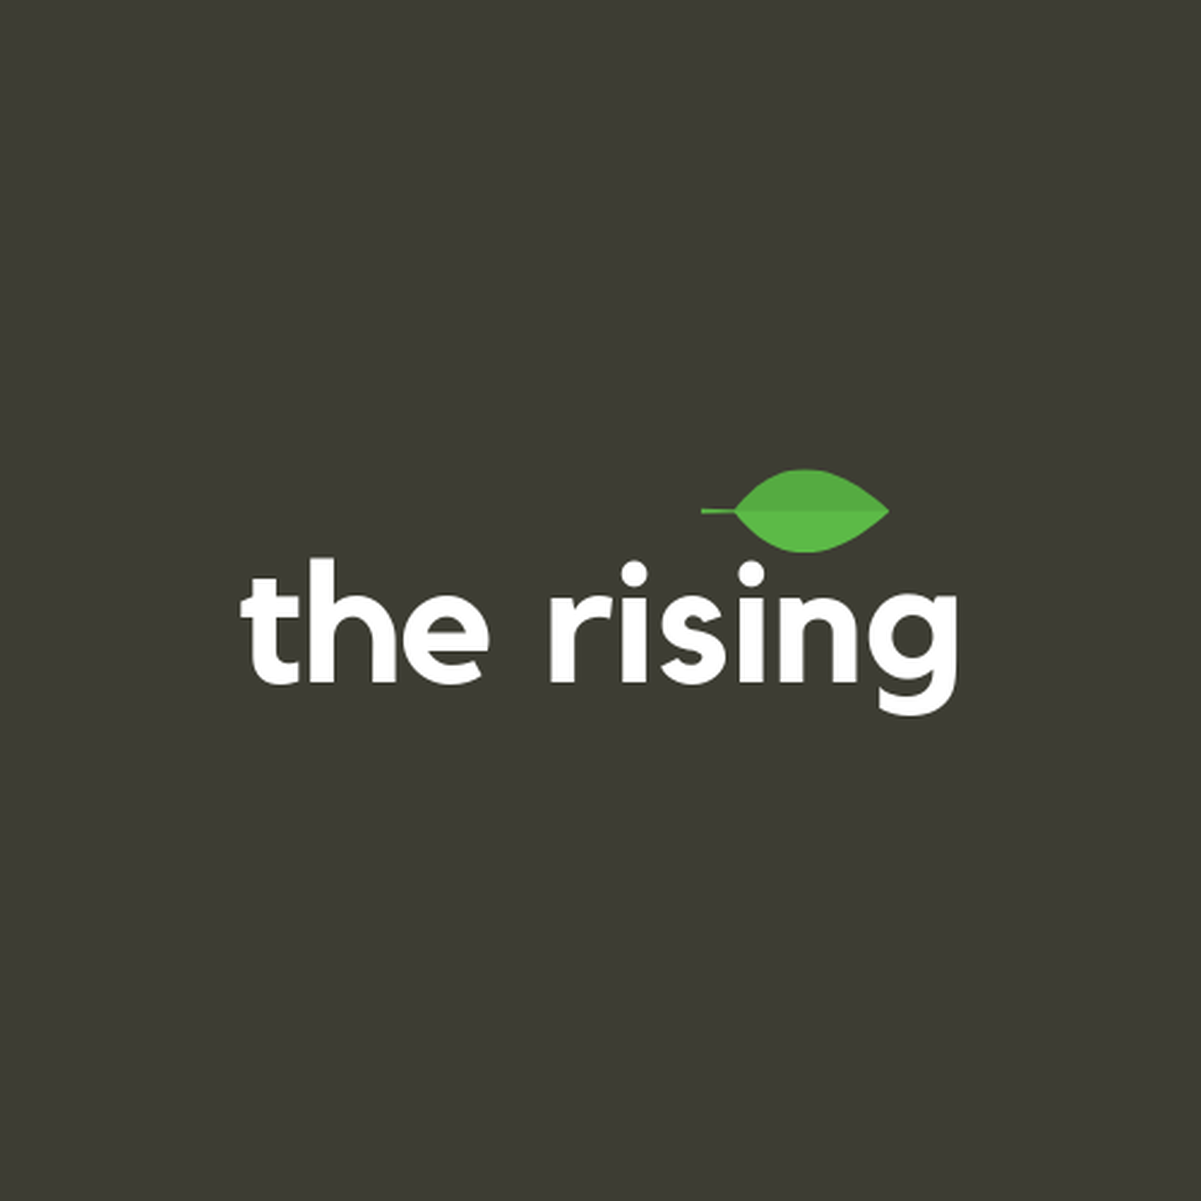 The Rising wiki, The Rising review, The Rising history, The Rising news